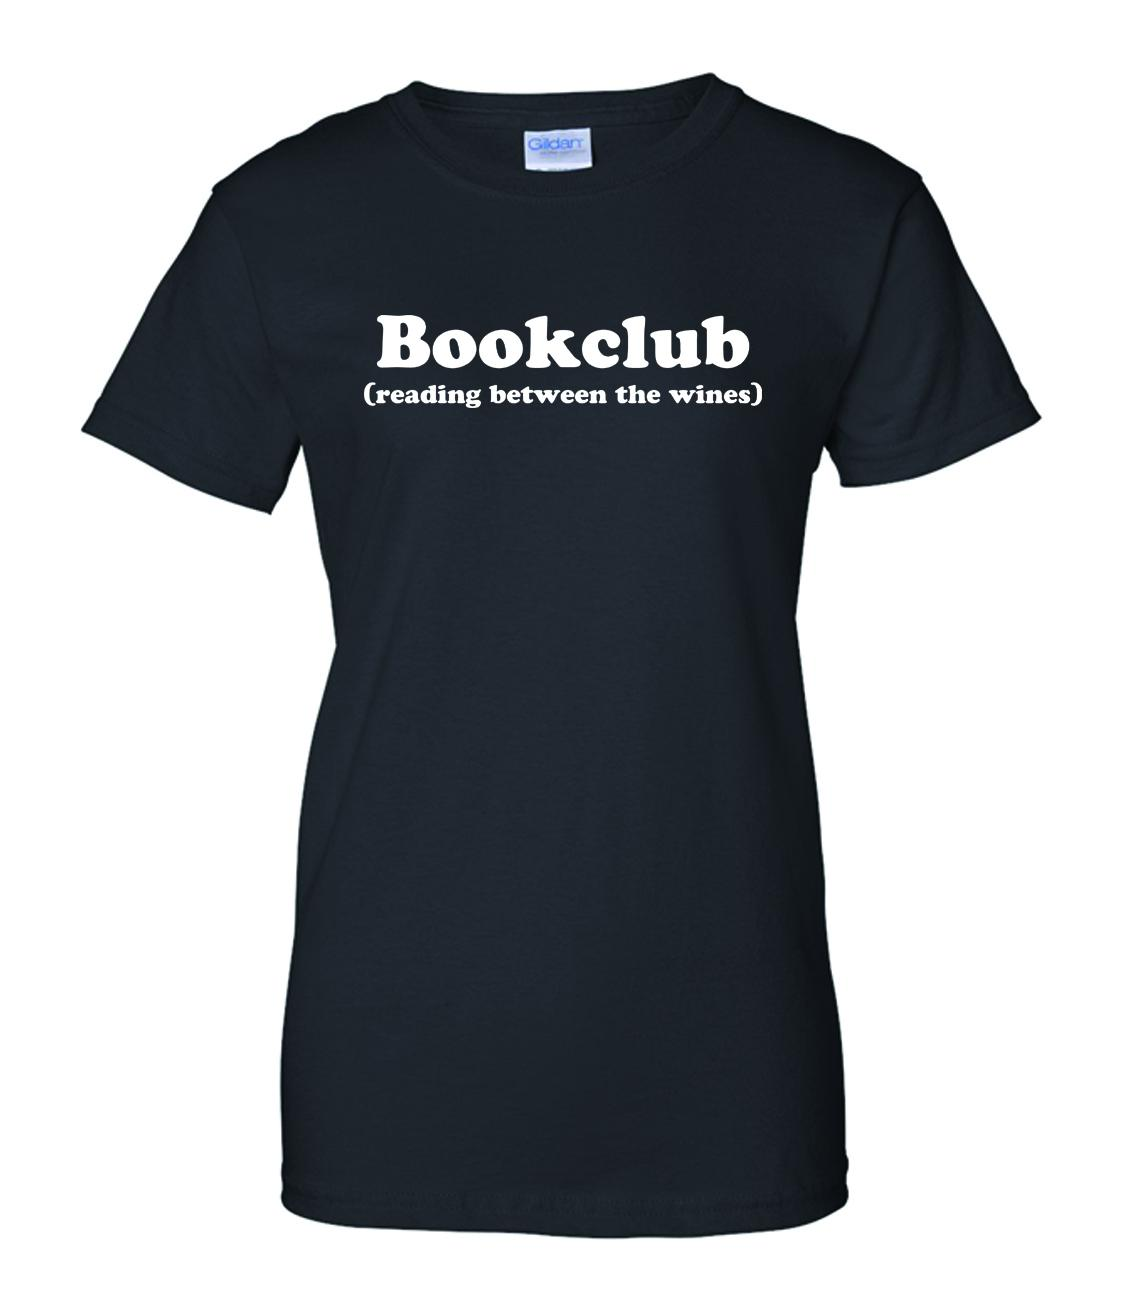 Bookclub reading between the wines t shirt anderson 39 s for Entire book on shirt